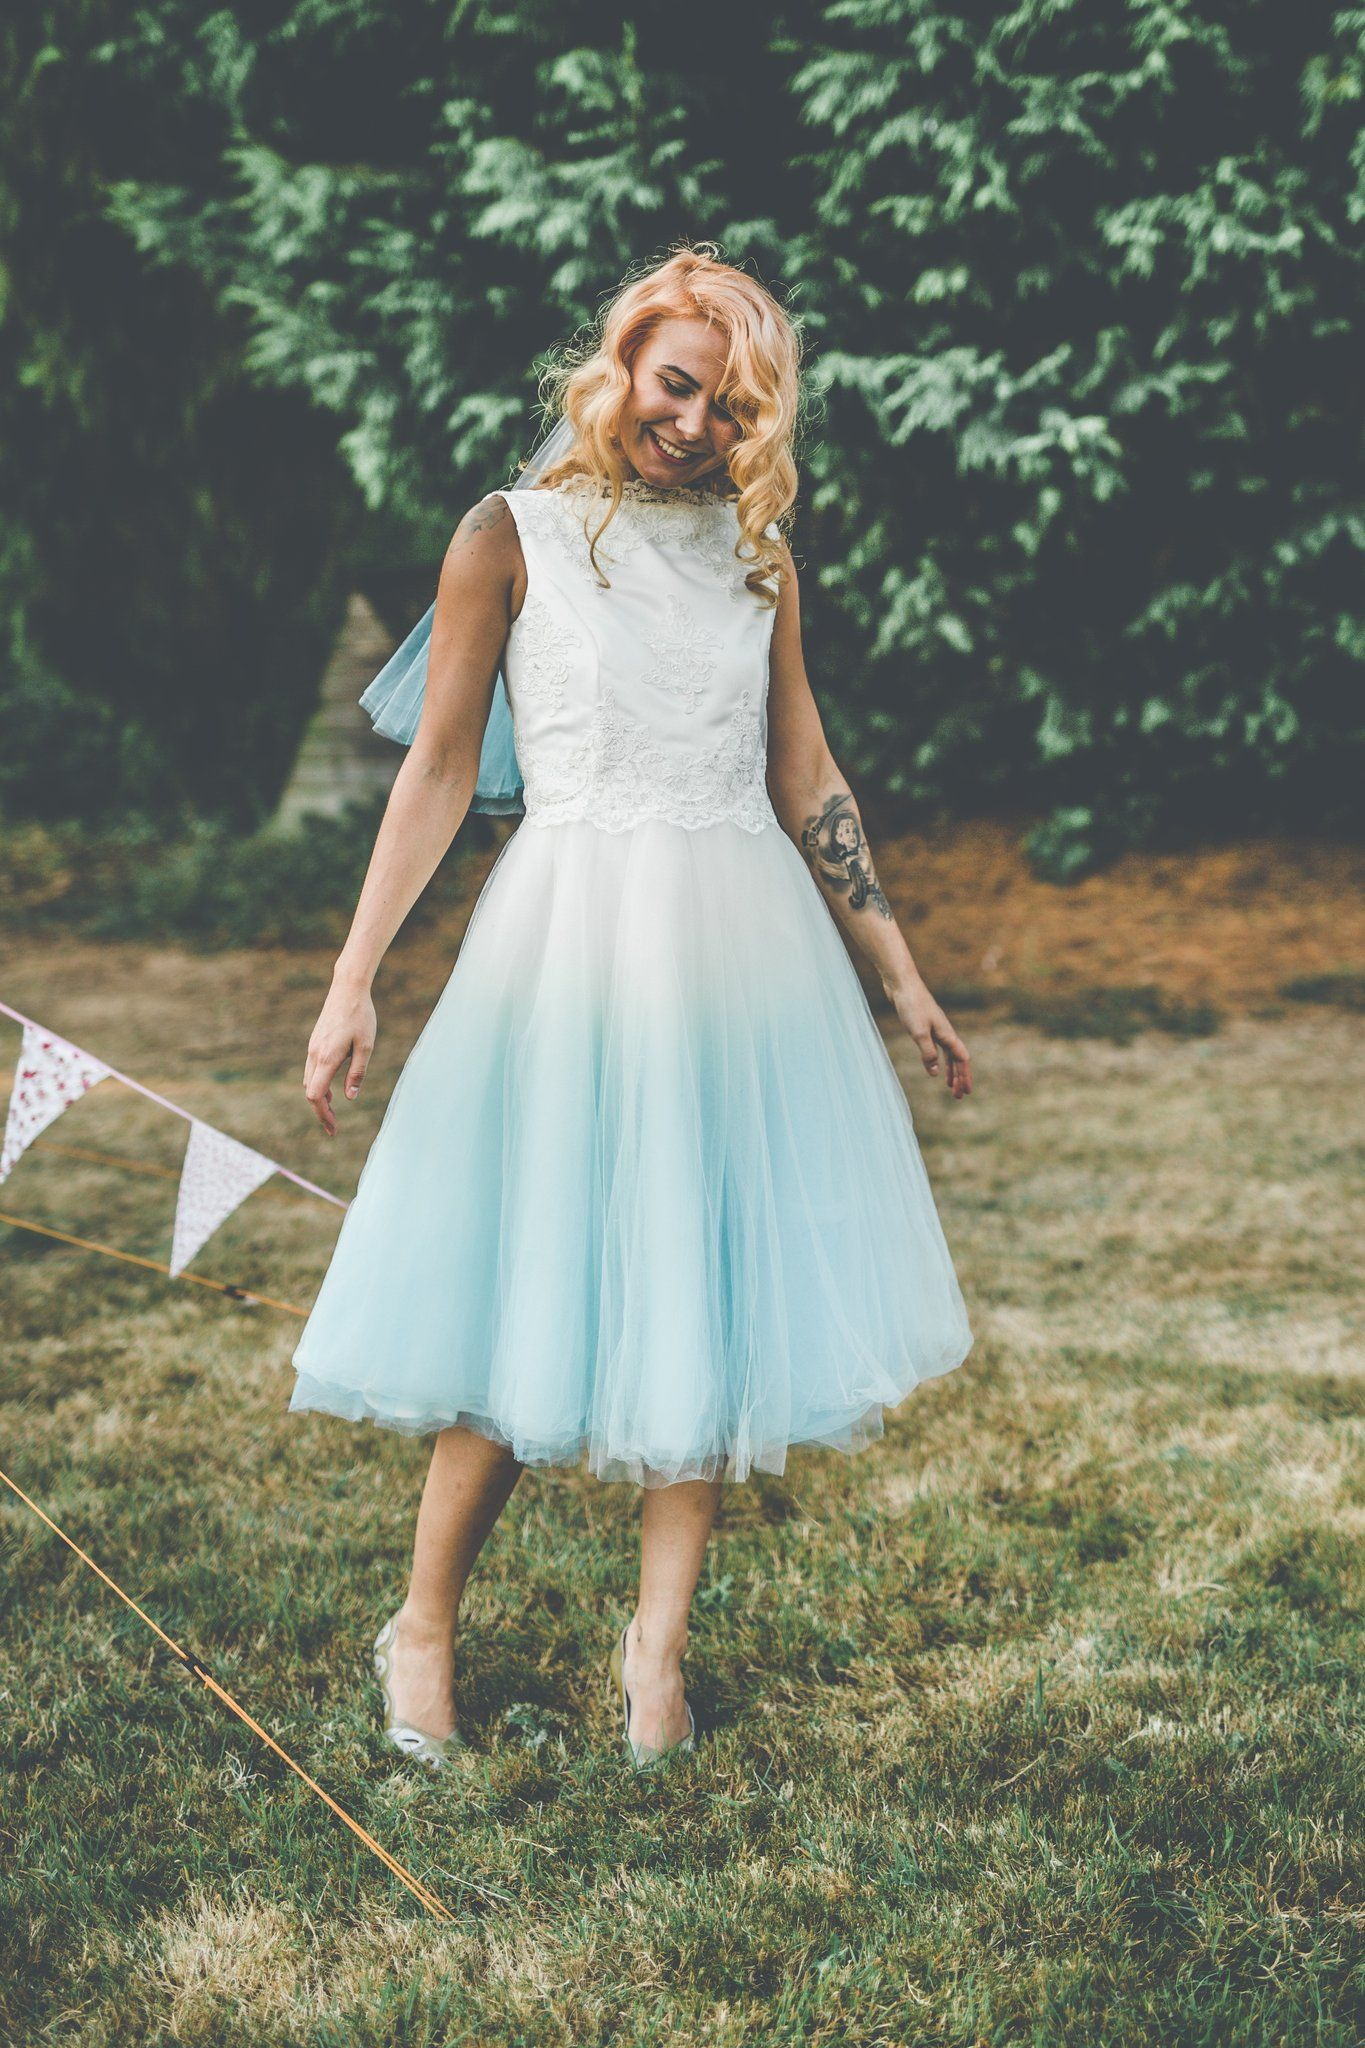 Gallery | ideas for Bug | Pinterest | Wedding dress, Vintage style ...